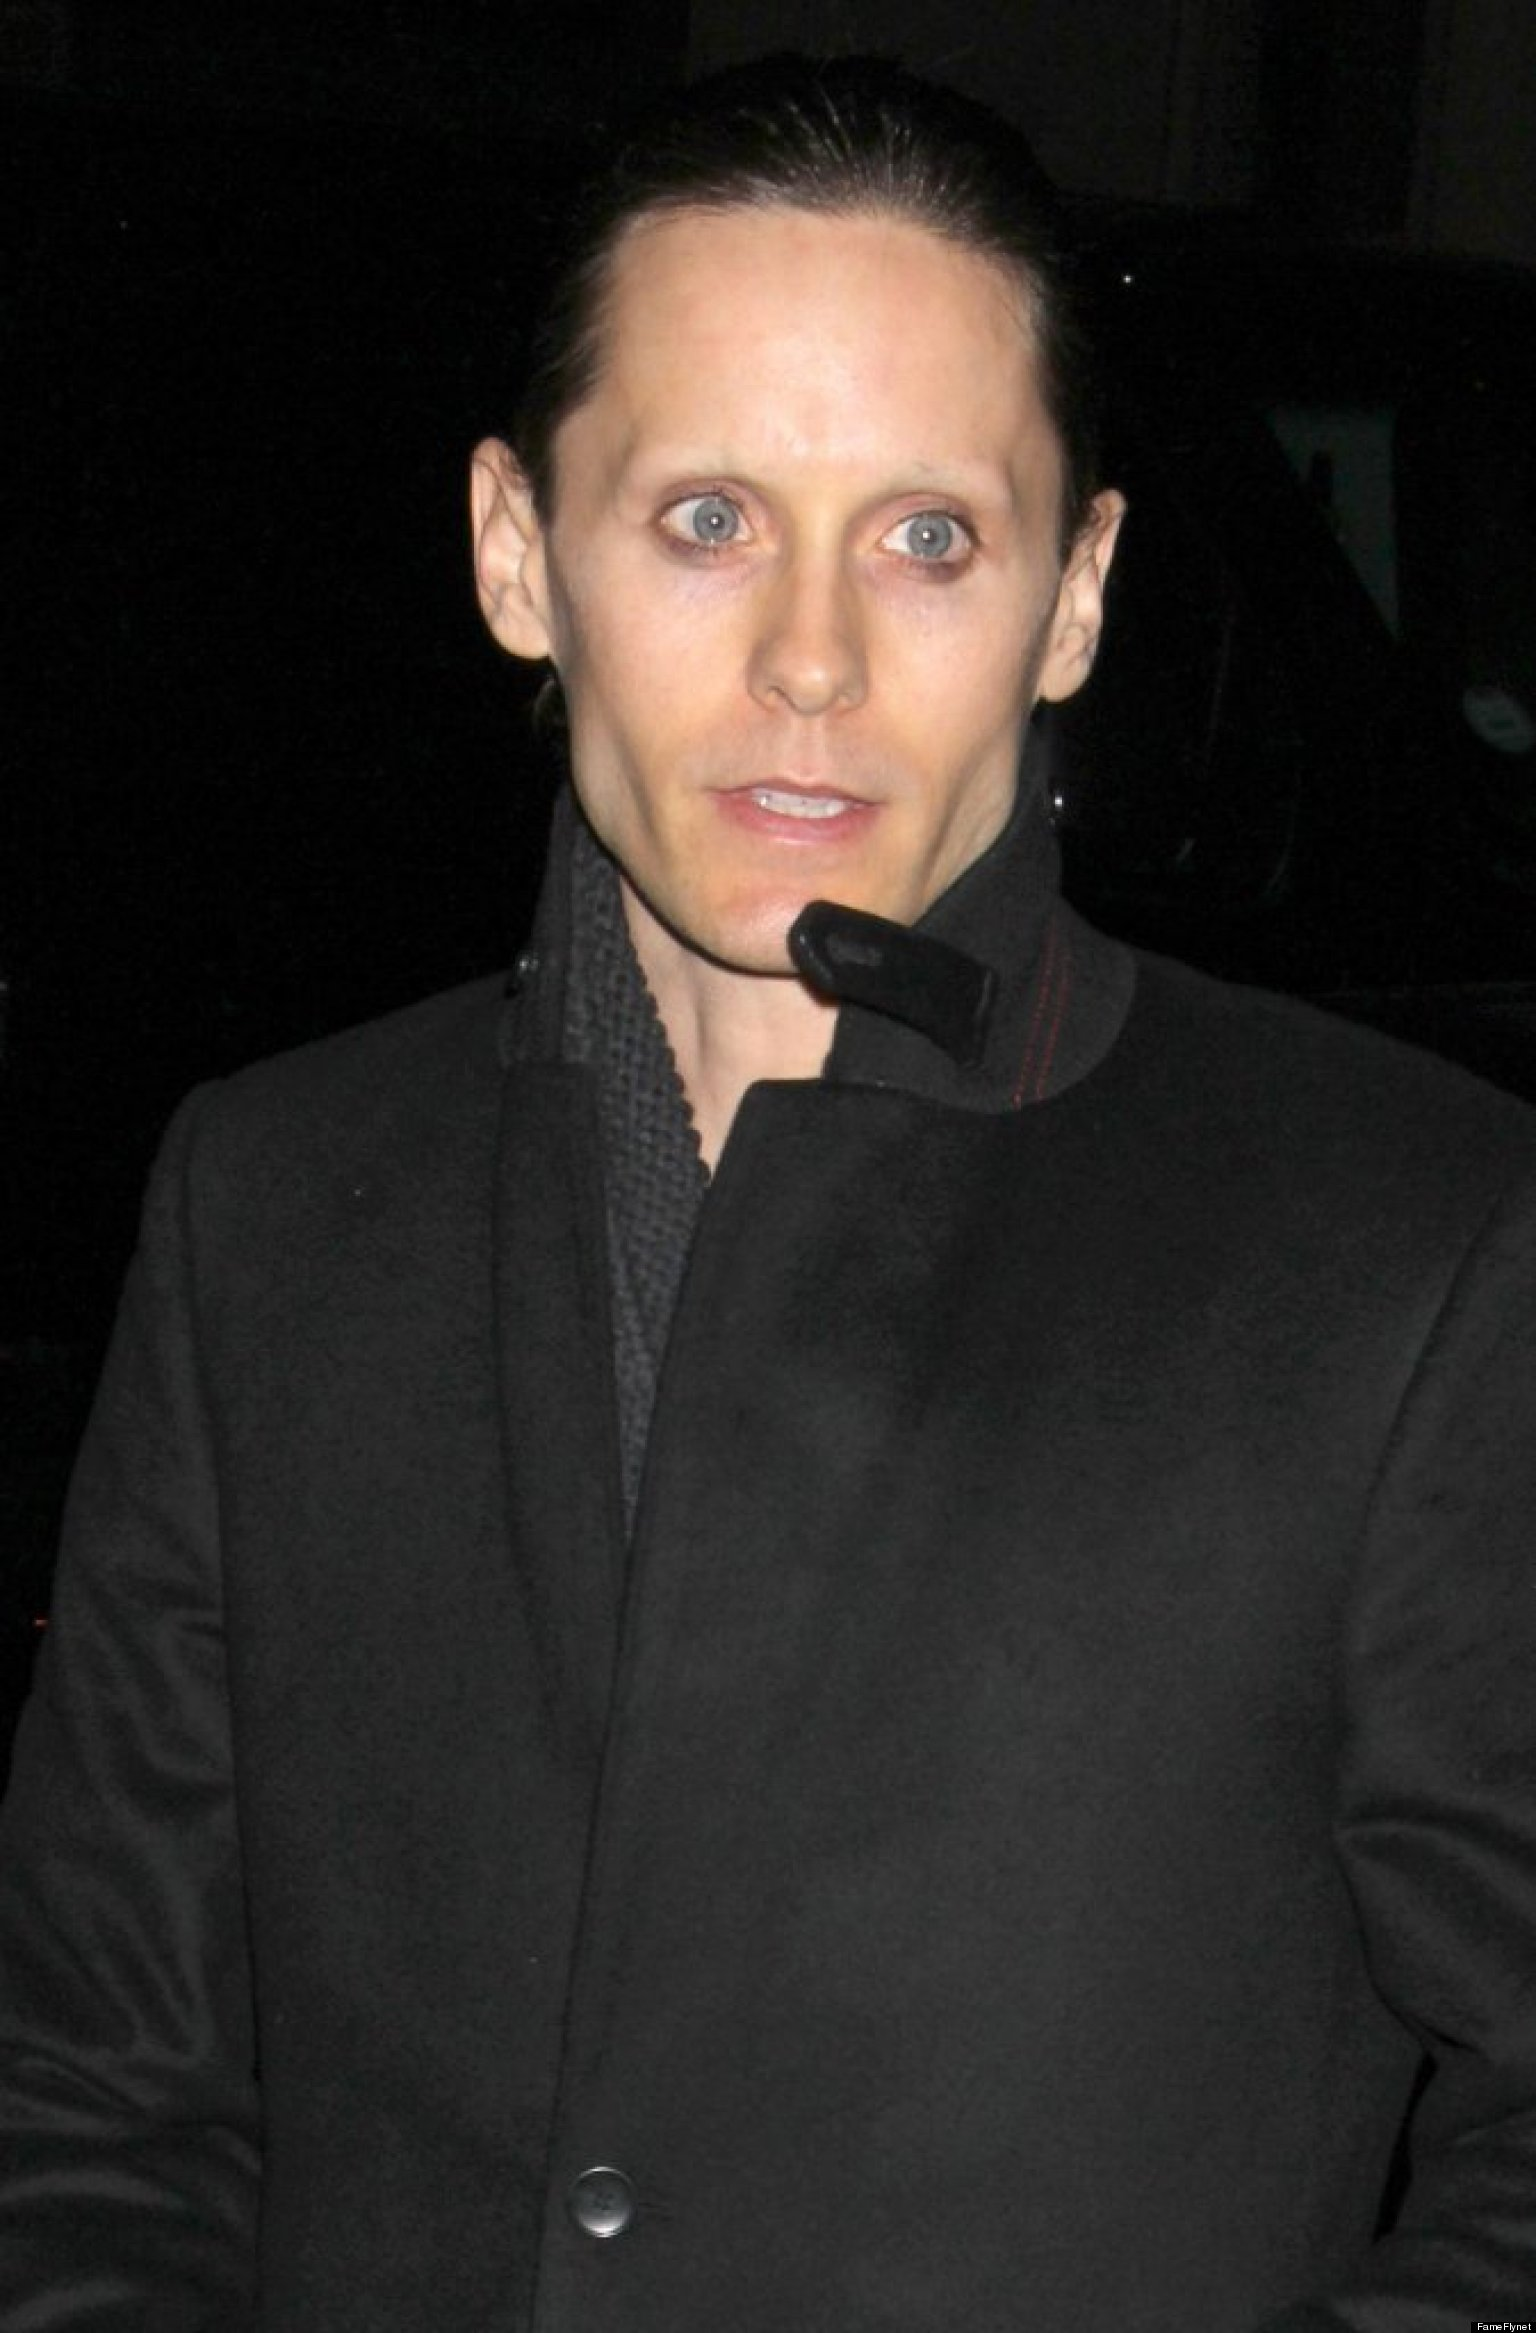 Jared Leto For Nylon Guys: Jared Leto, No Eyebrows: Actor Shaves For 'Dallas Buyers